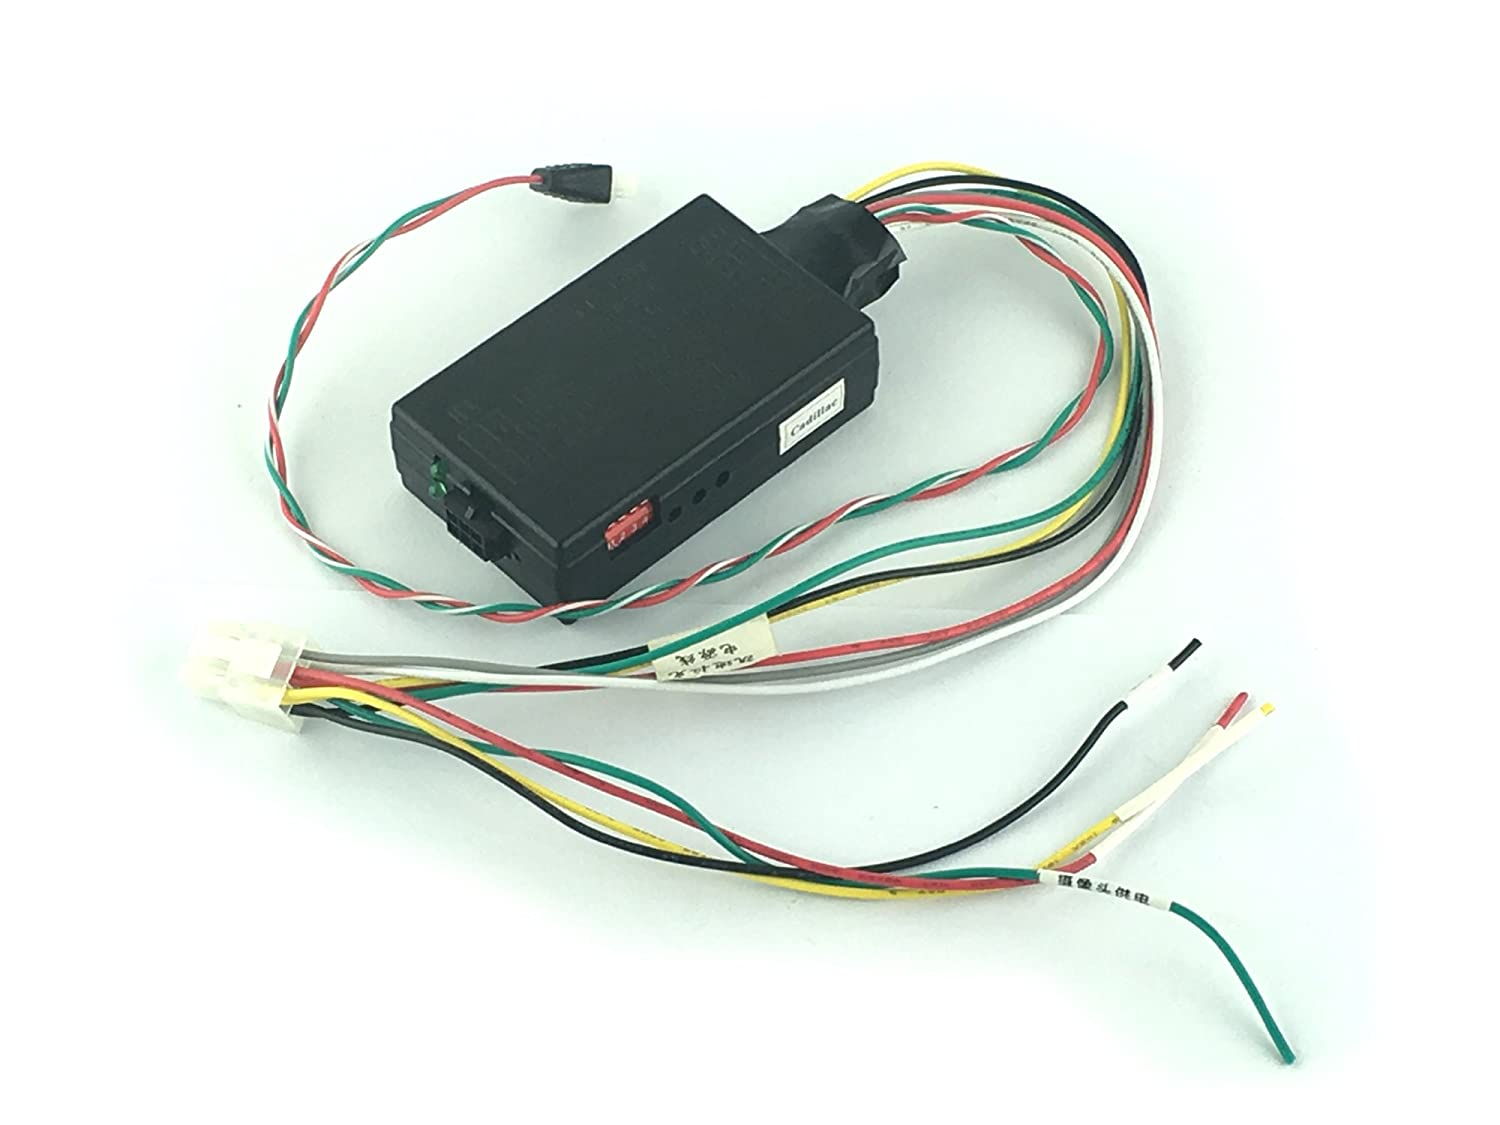 Exploter Camera Interface Box For Cadillac Srx Xts Ats Wiring Harness Head Unit With Cue System Car Electronics